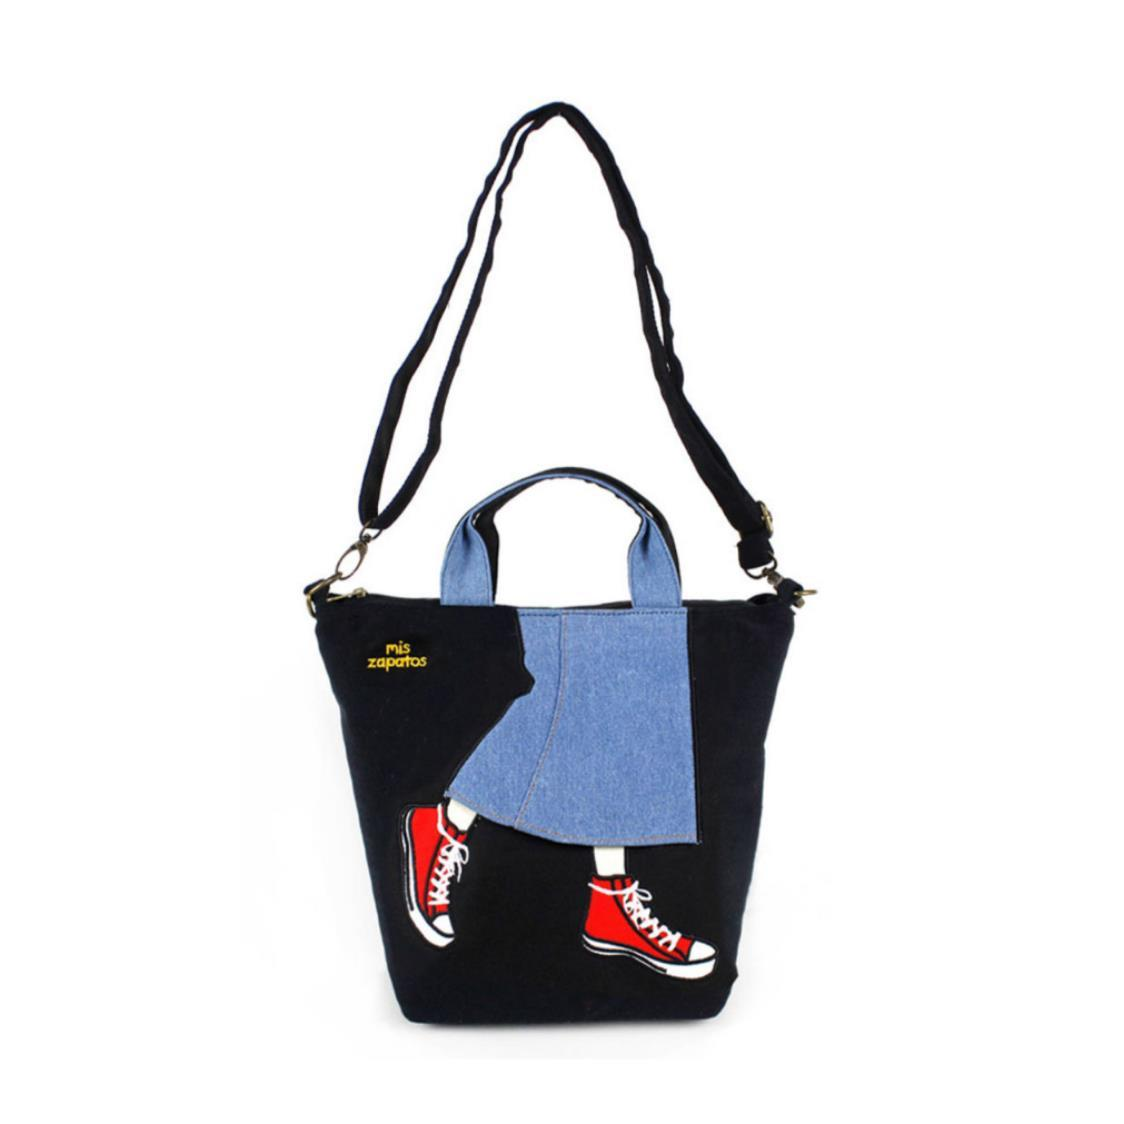 3-Way Use Jeans Skirt with Sneakers Handbag Black